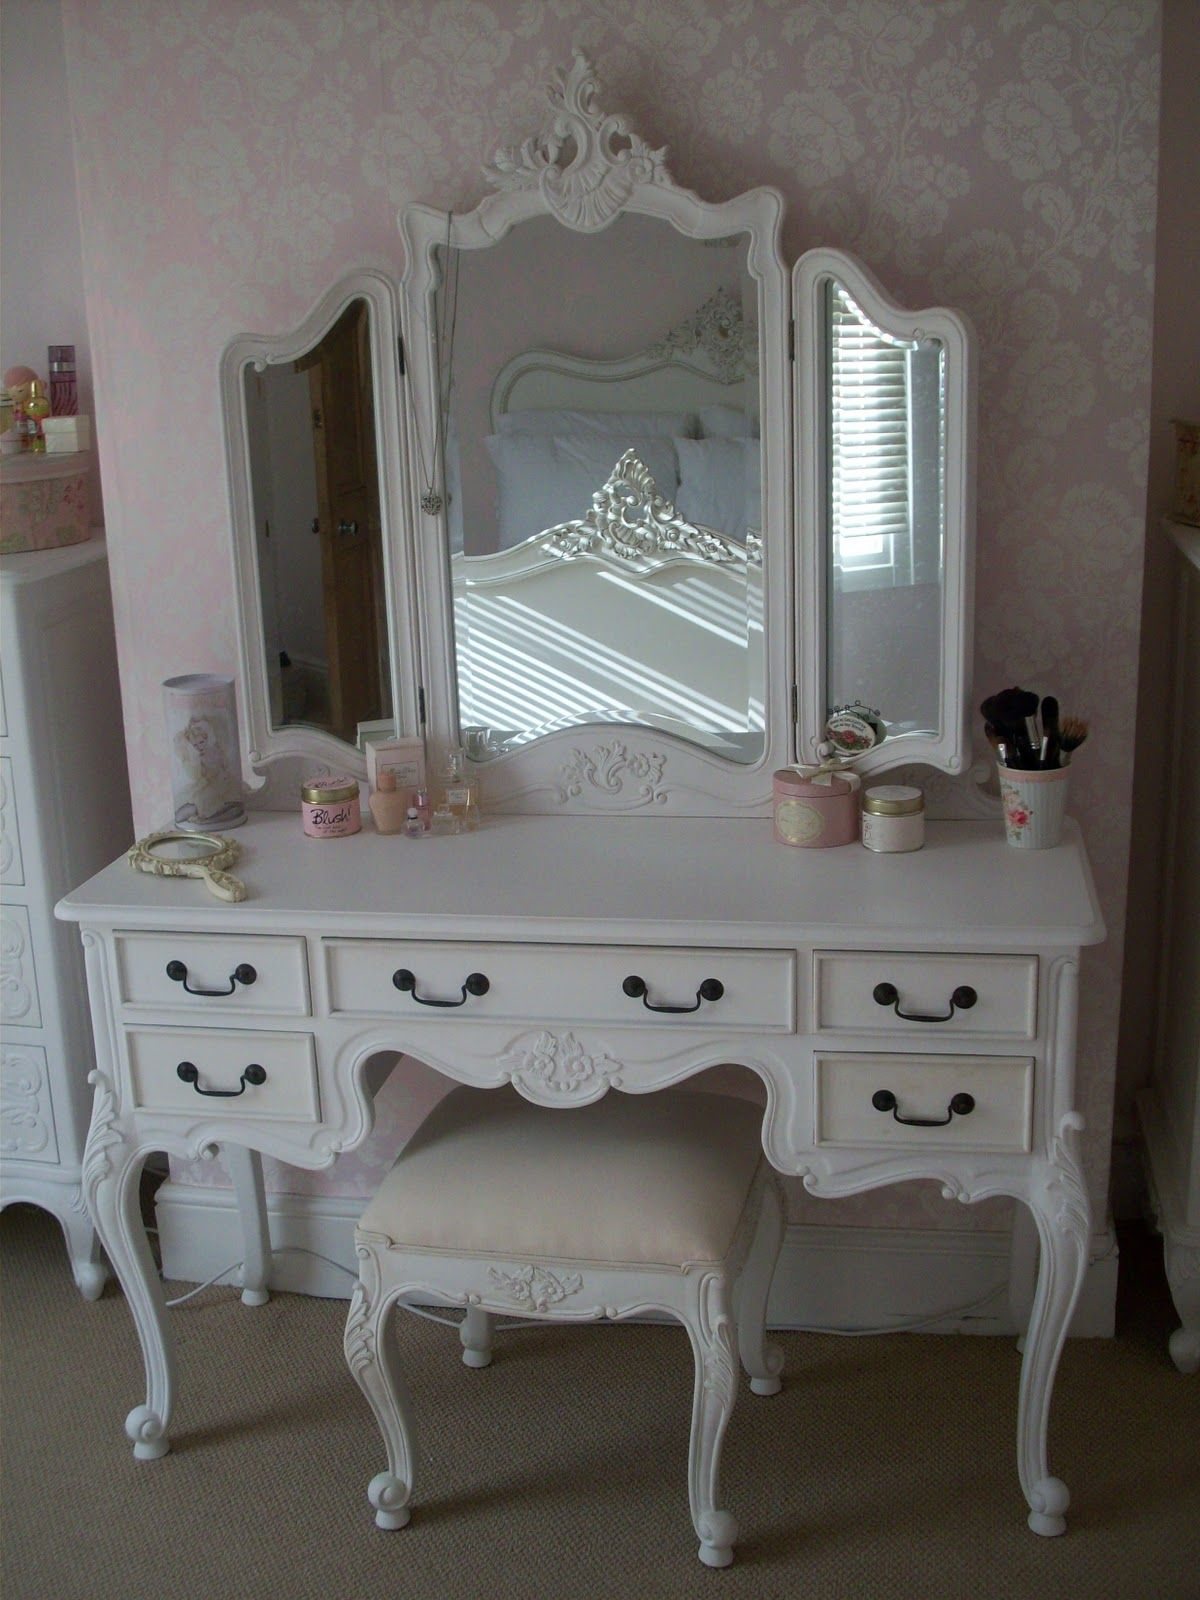 Amazing White Wooden Tri-fold Dresser Vanity Makeup Table